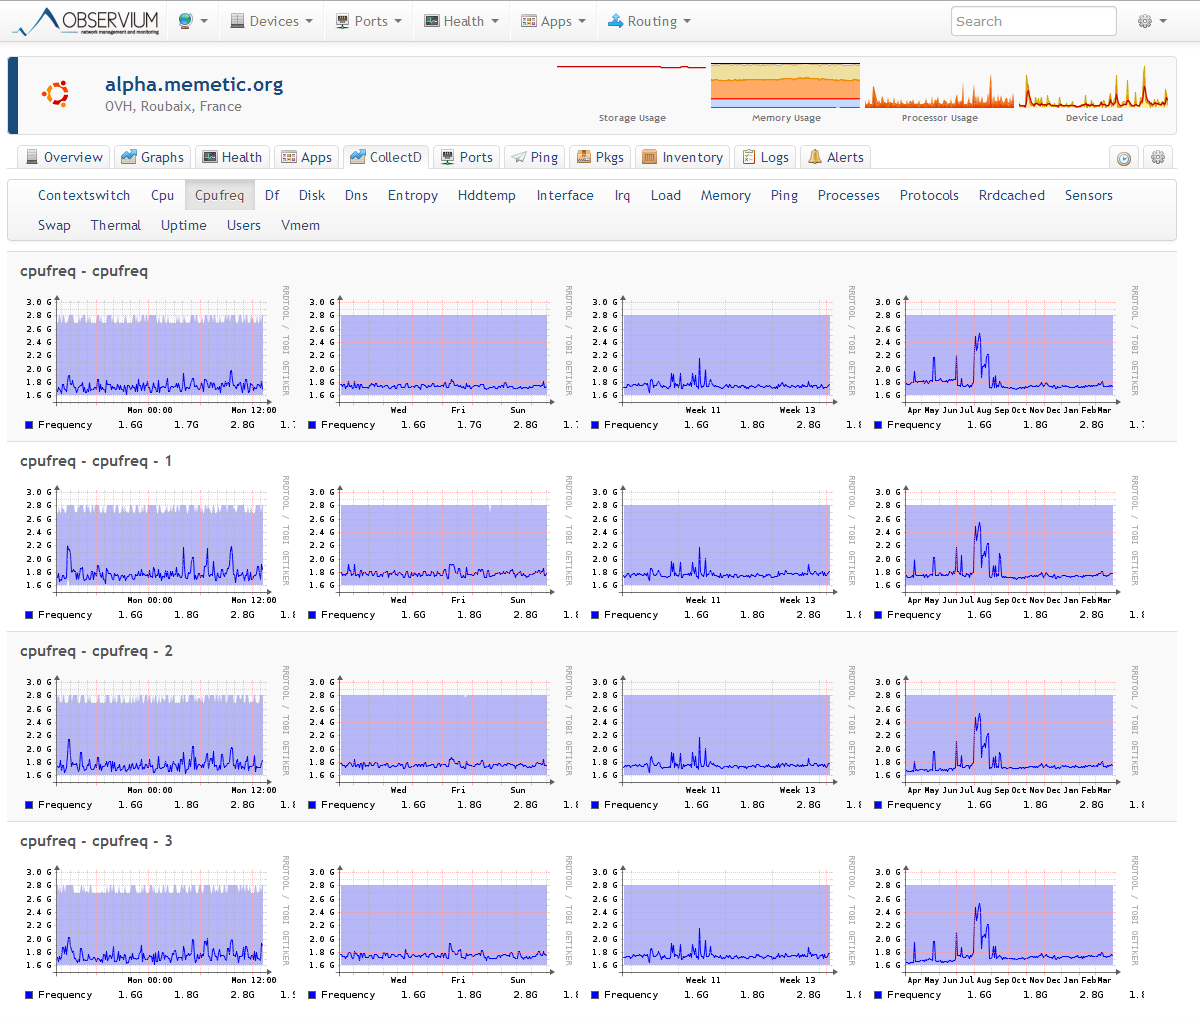 Observium: A Complete Network Management and Monitoring